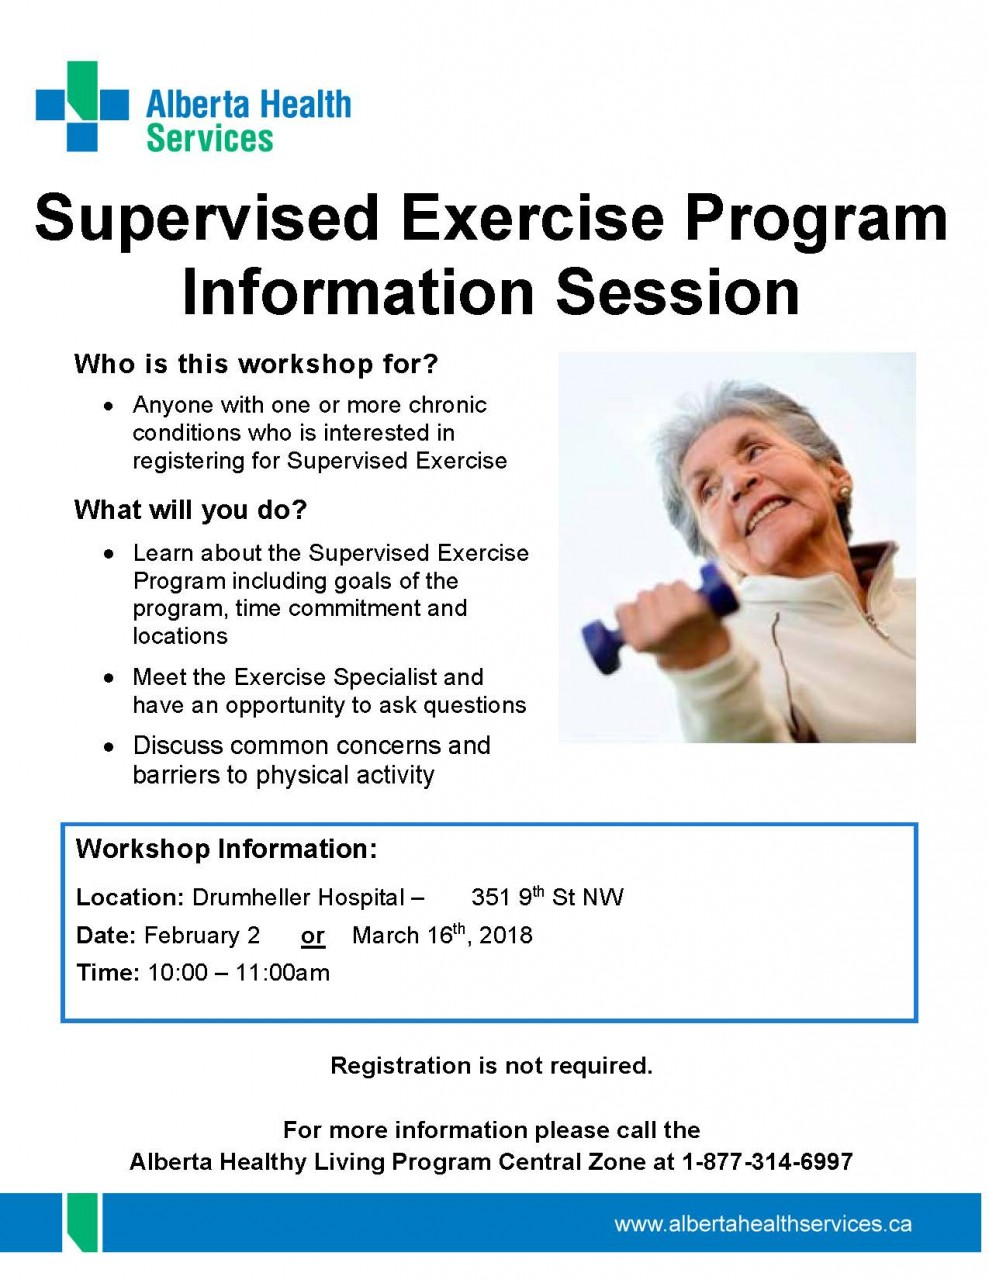 Supervised-Exercise-Info-Session-Drum-Feb-2-or-March-16-2018